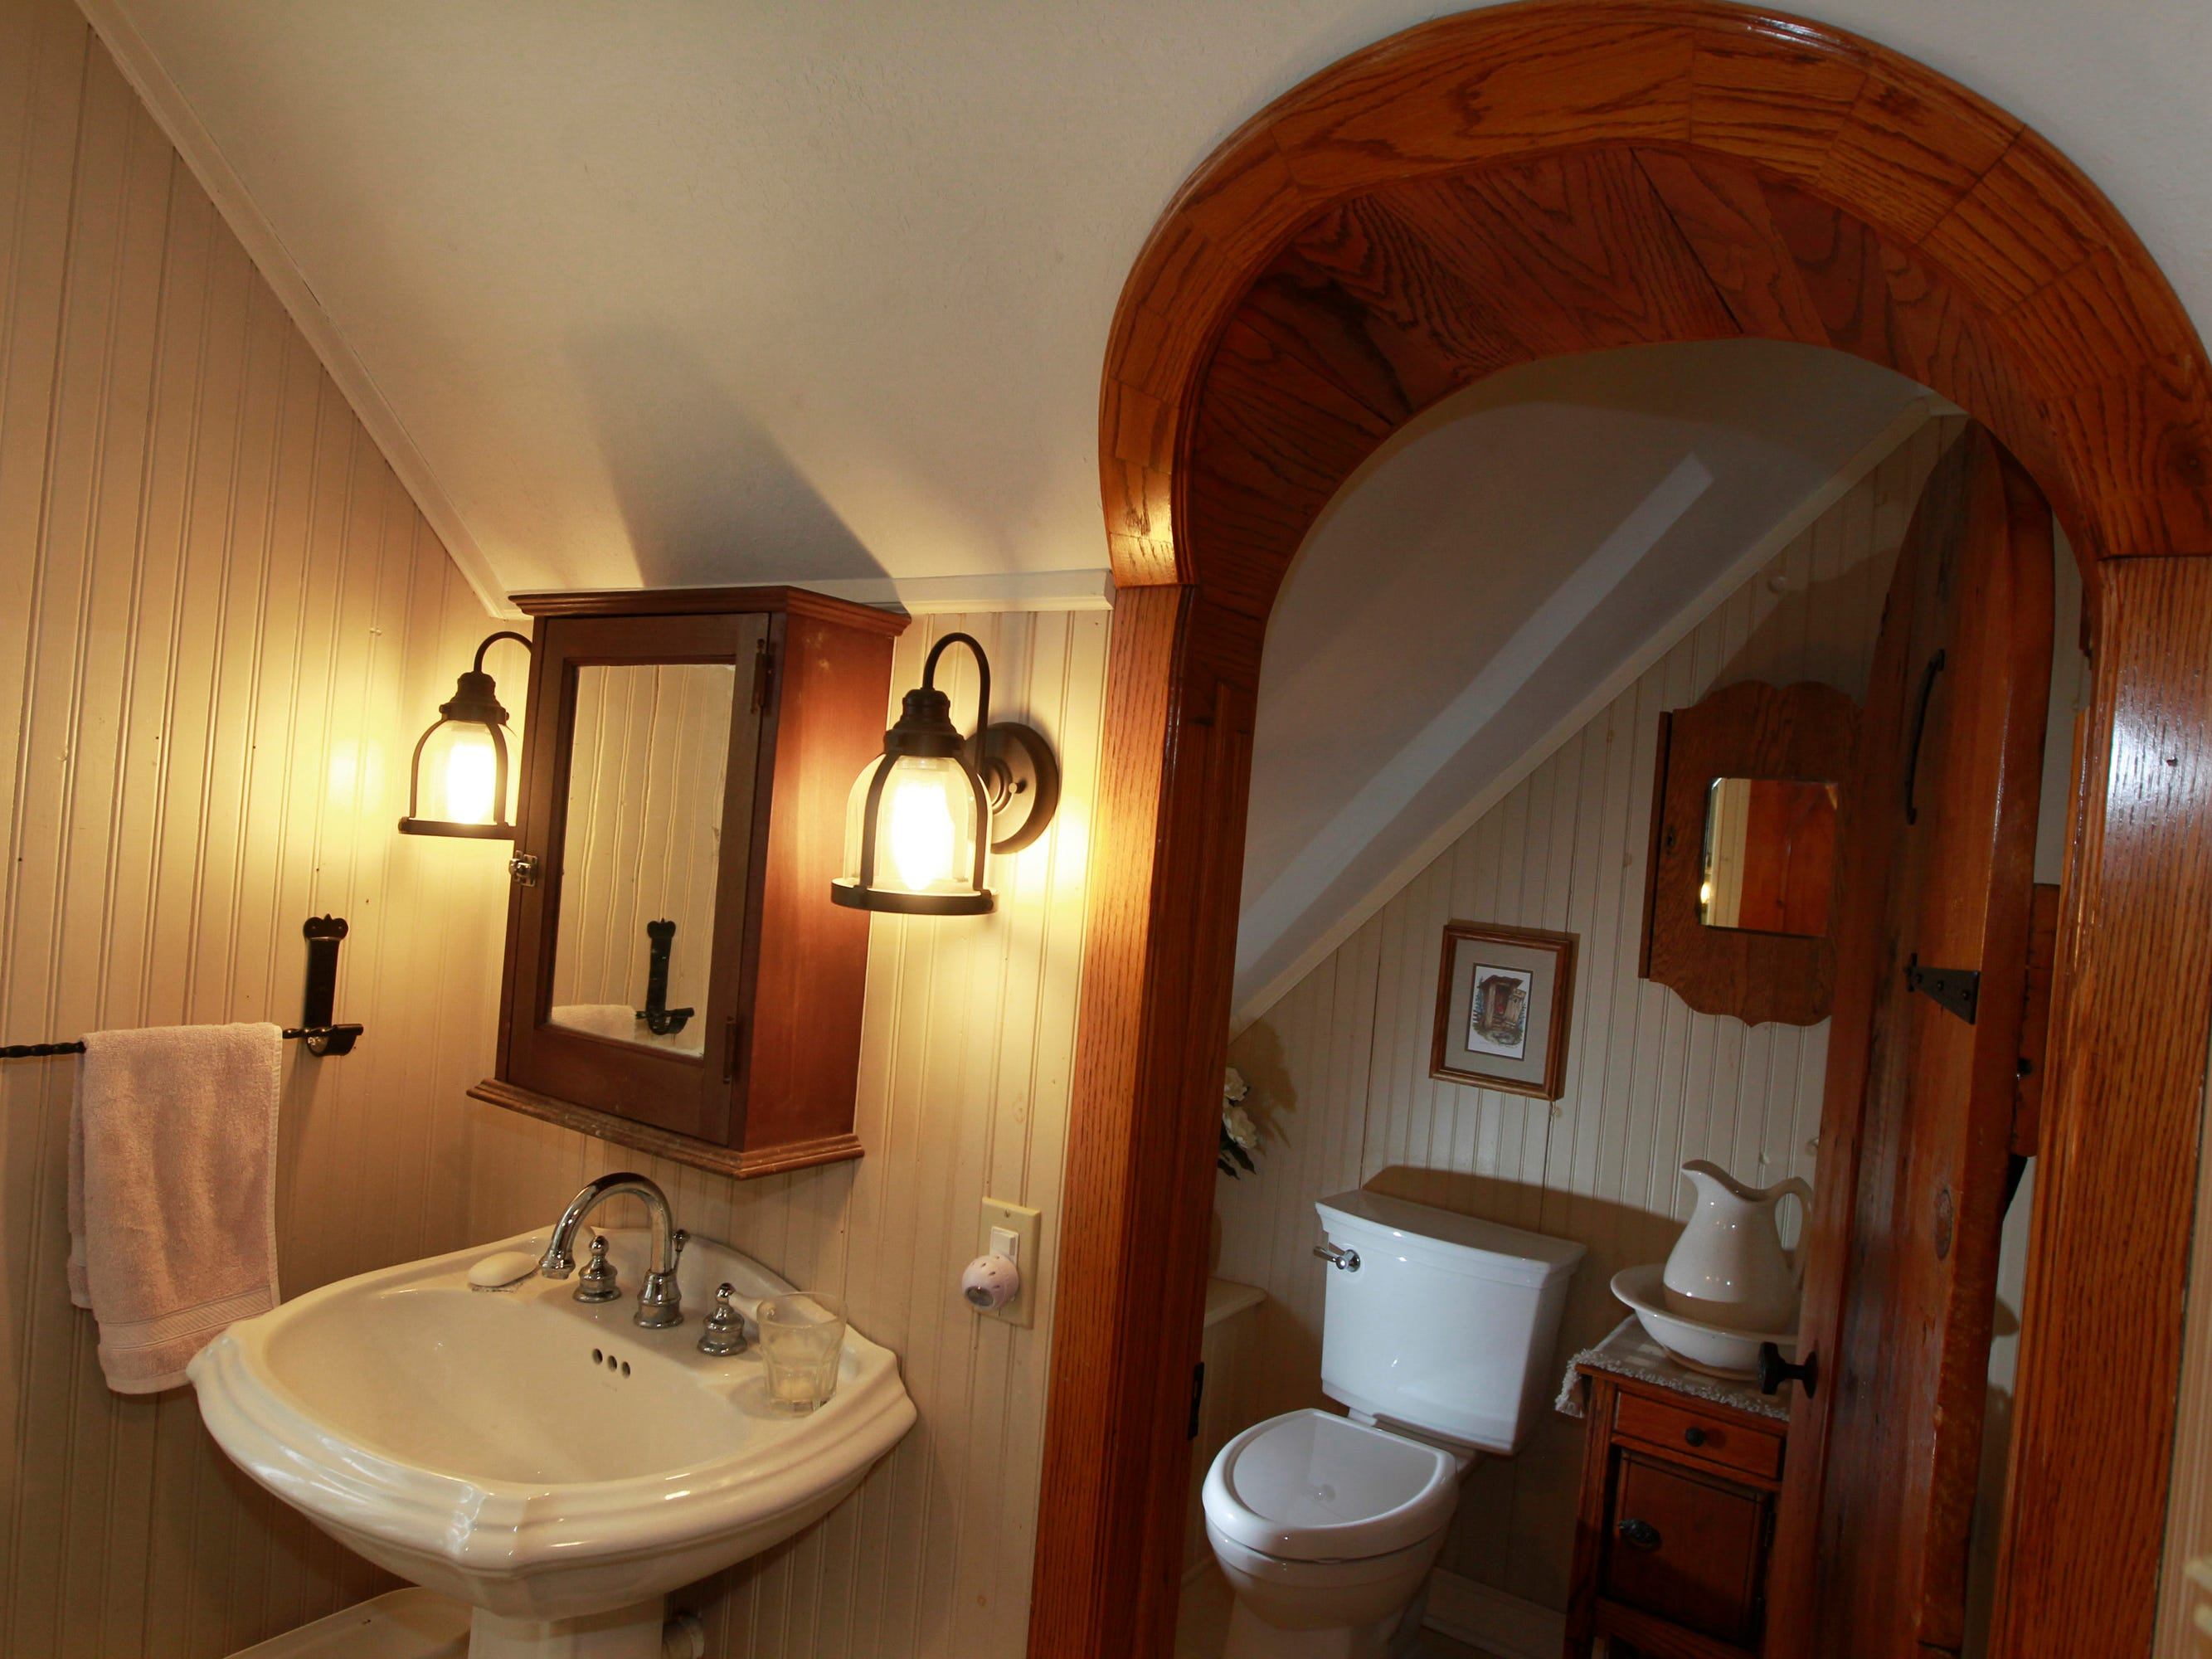 The upstairs bathroom in the home.